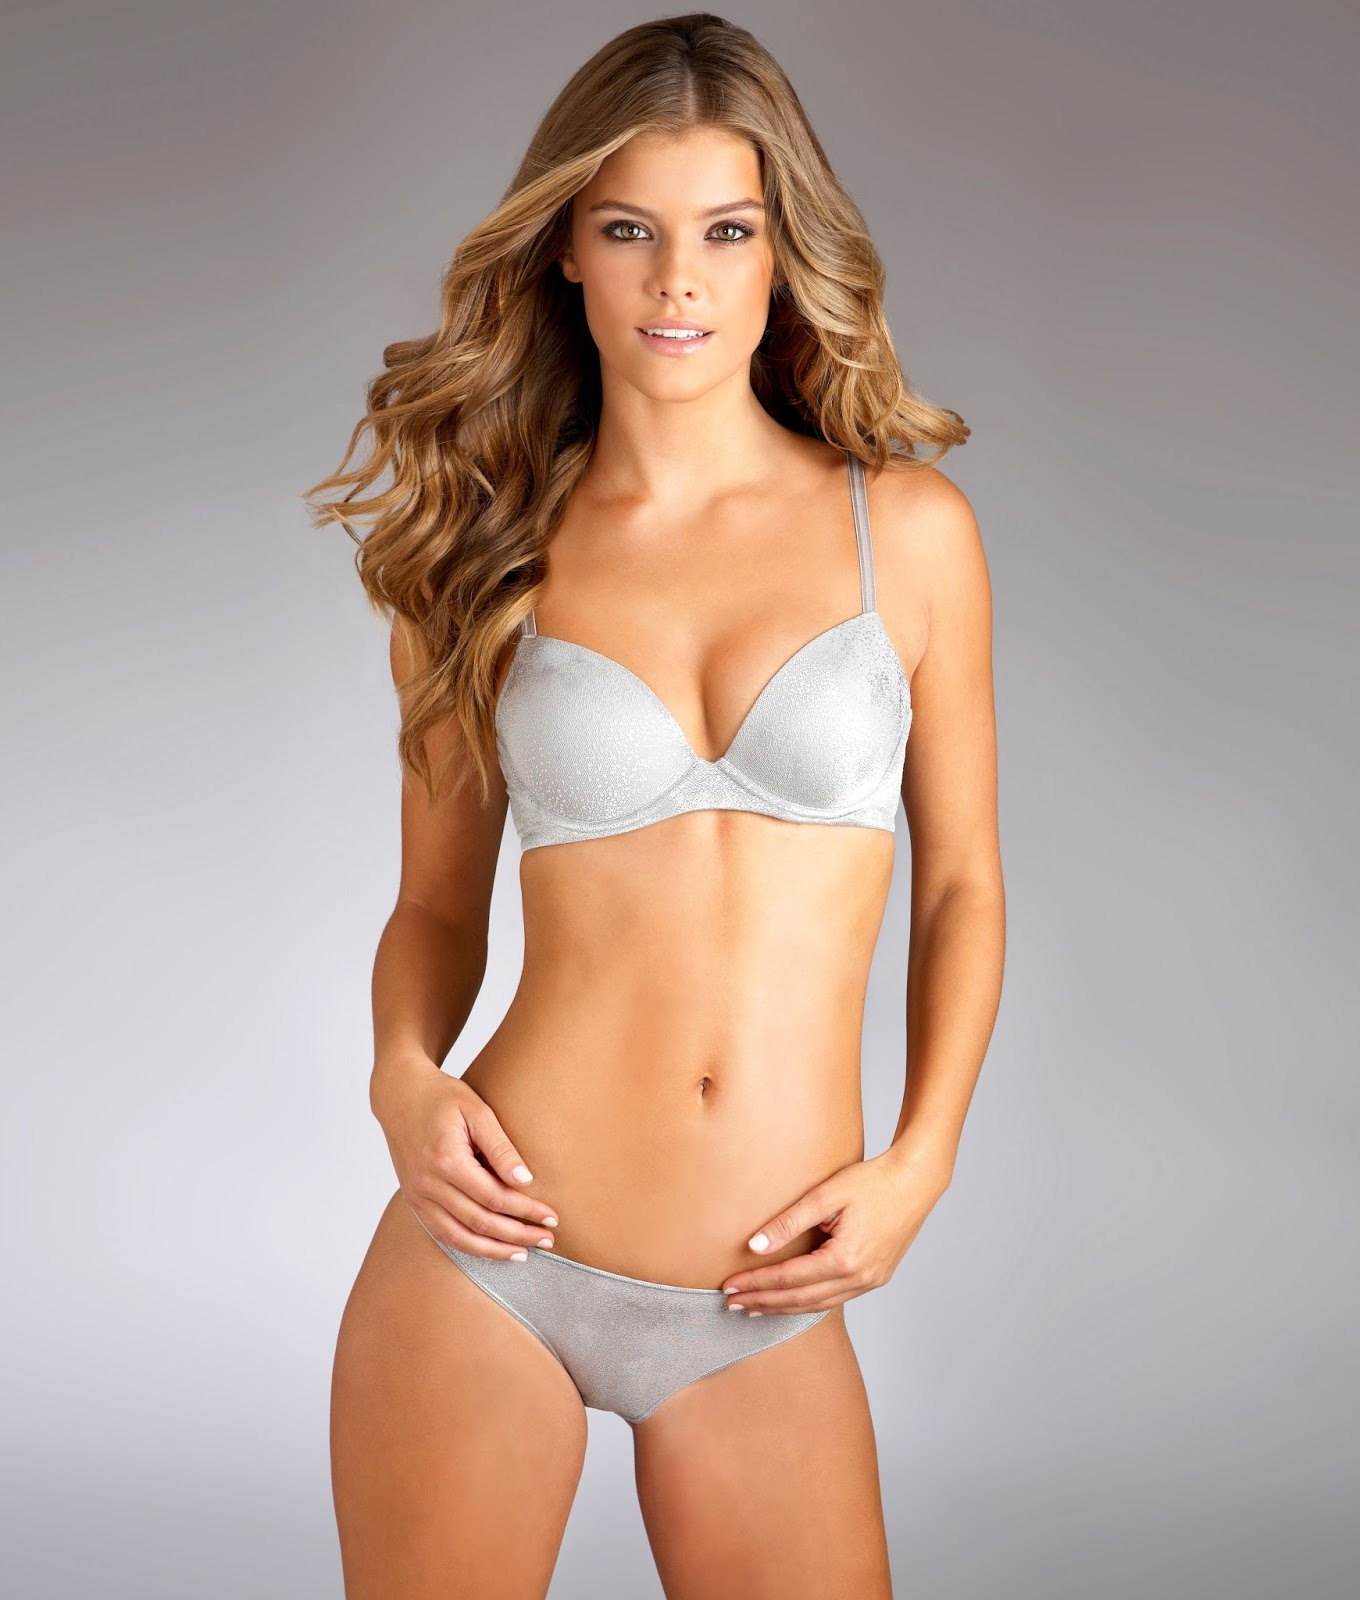 Nina Agdal hot pics in bra and panty